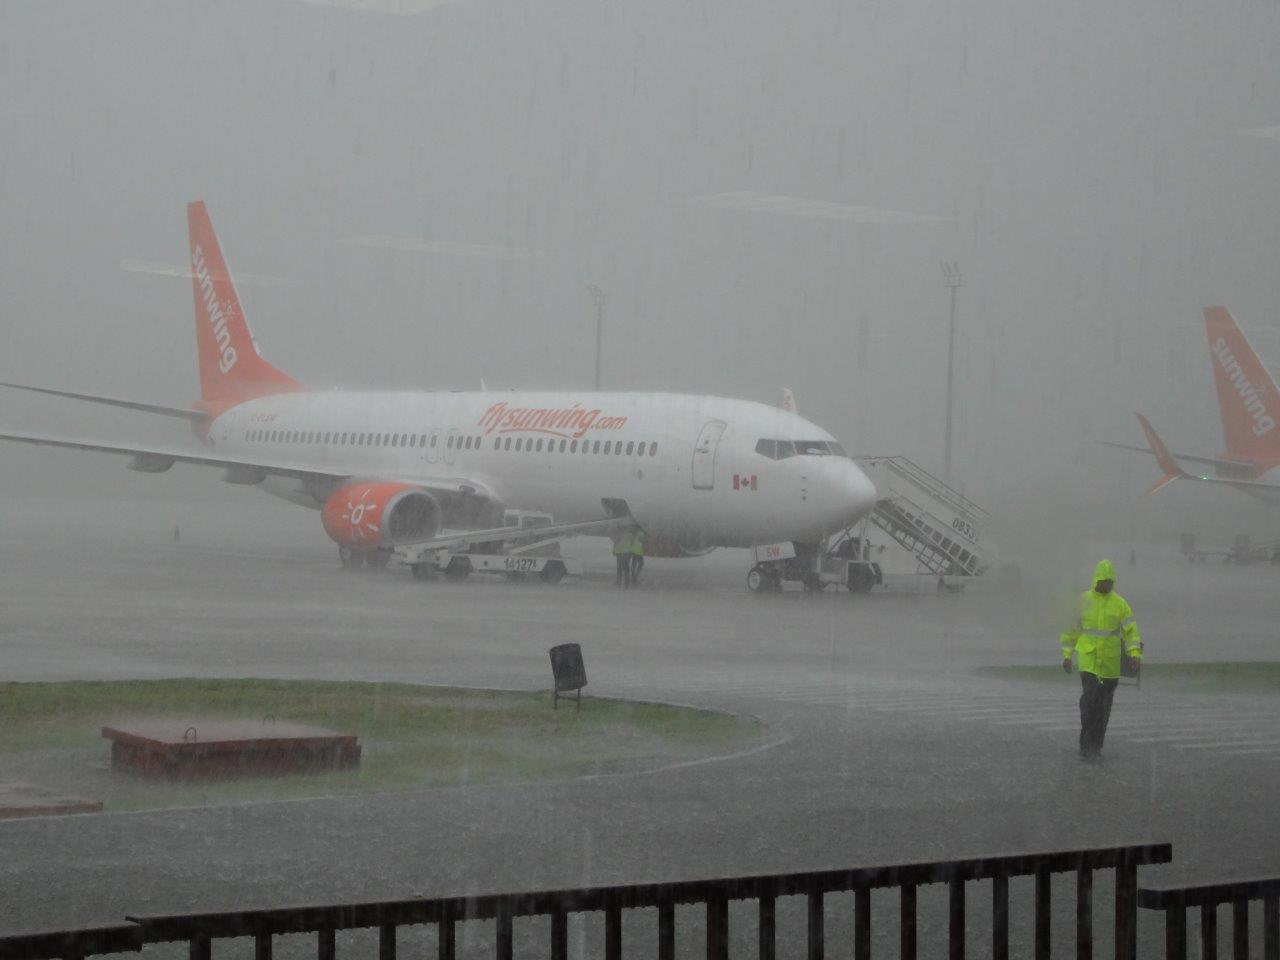 Irma band of torrential rain at Havana airport